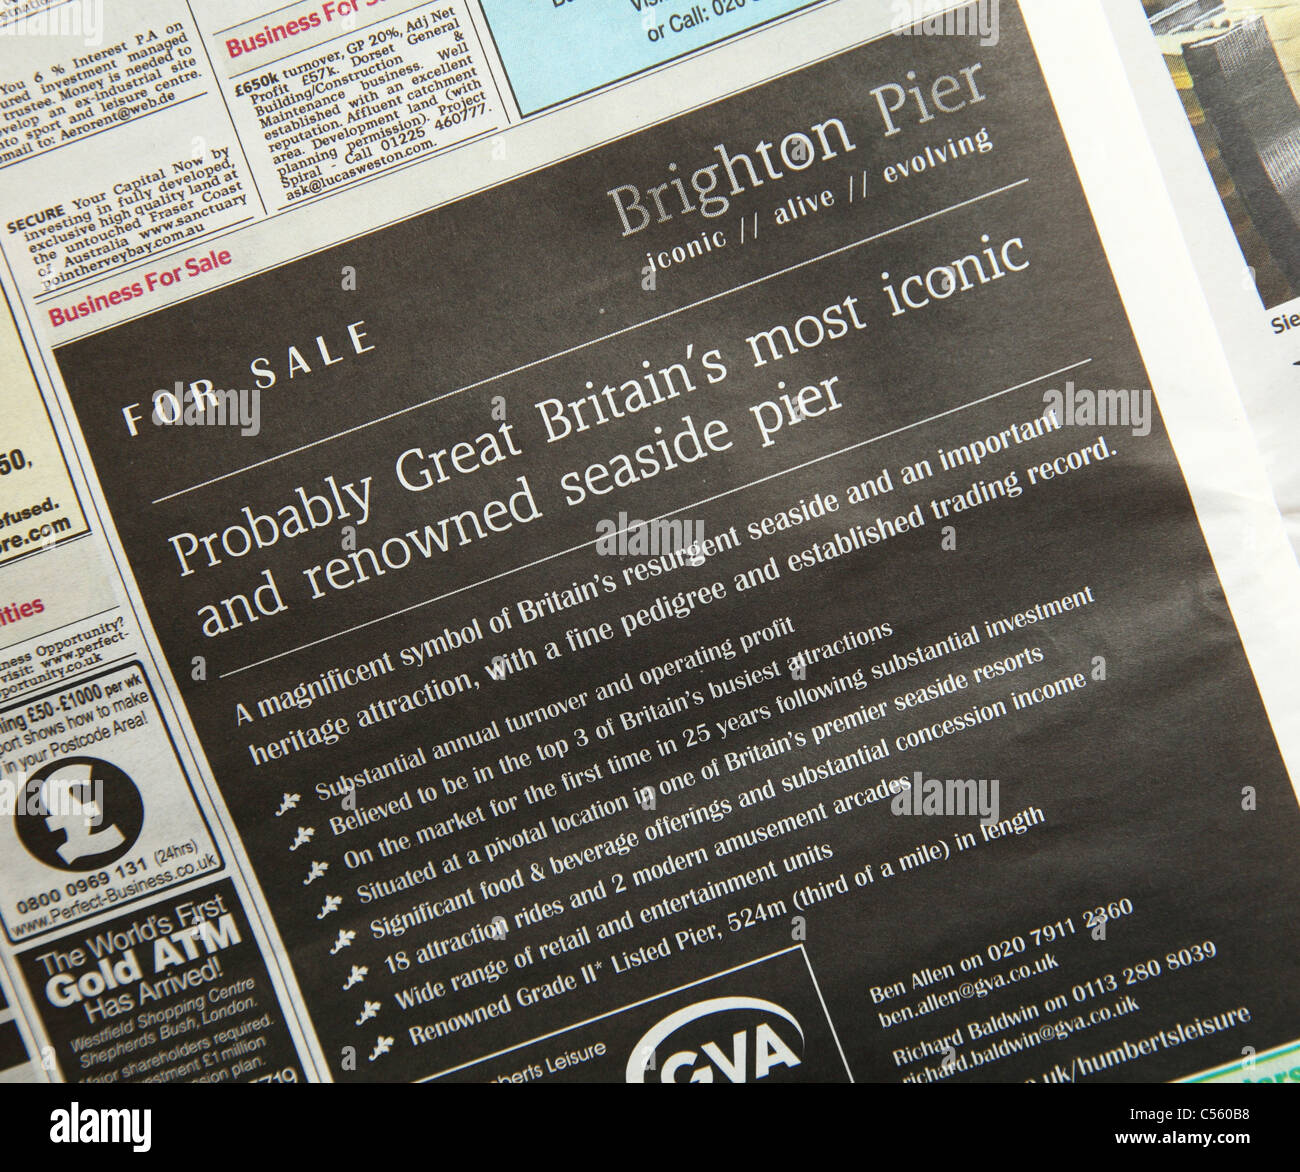 Brighton Pier advertised for sale in The Times newspaper. - Stock Image